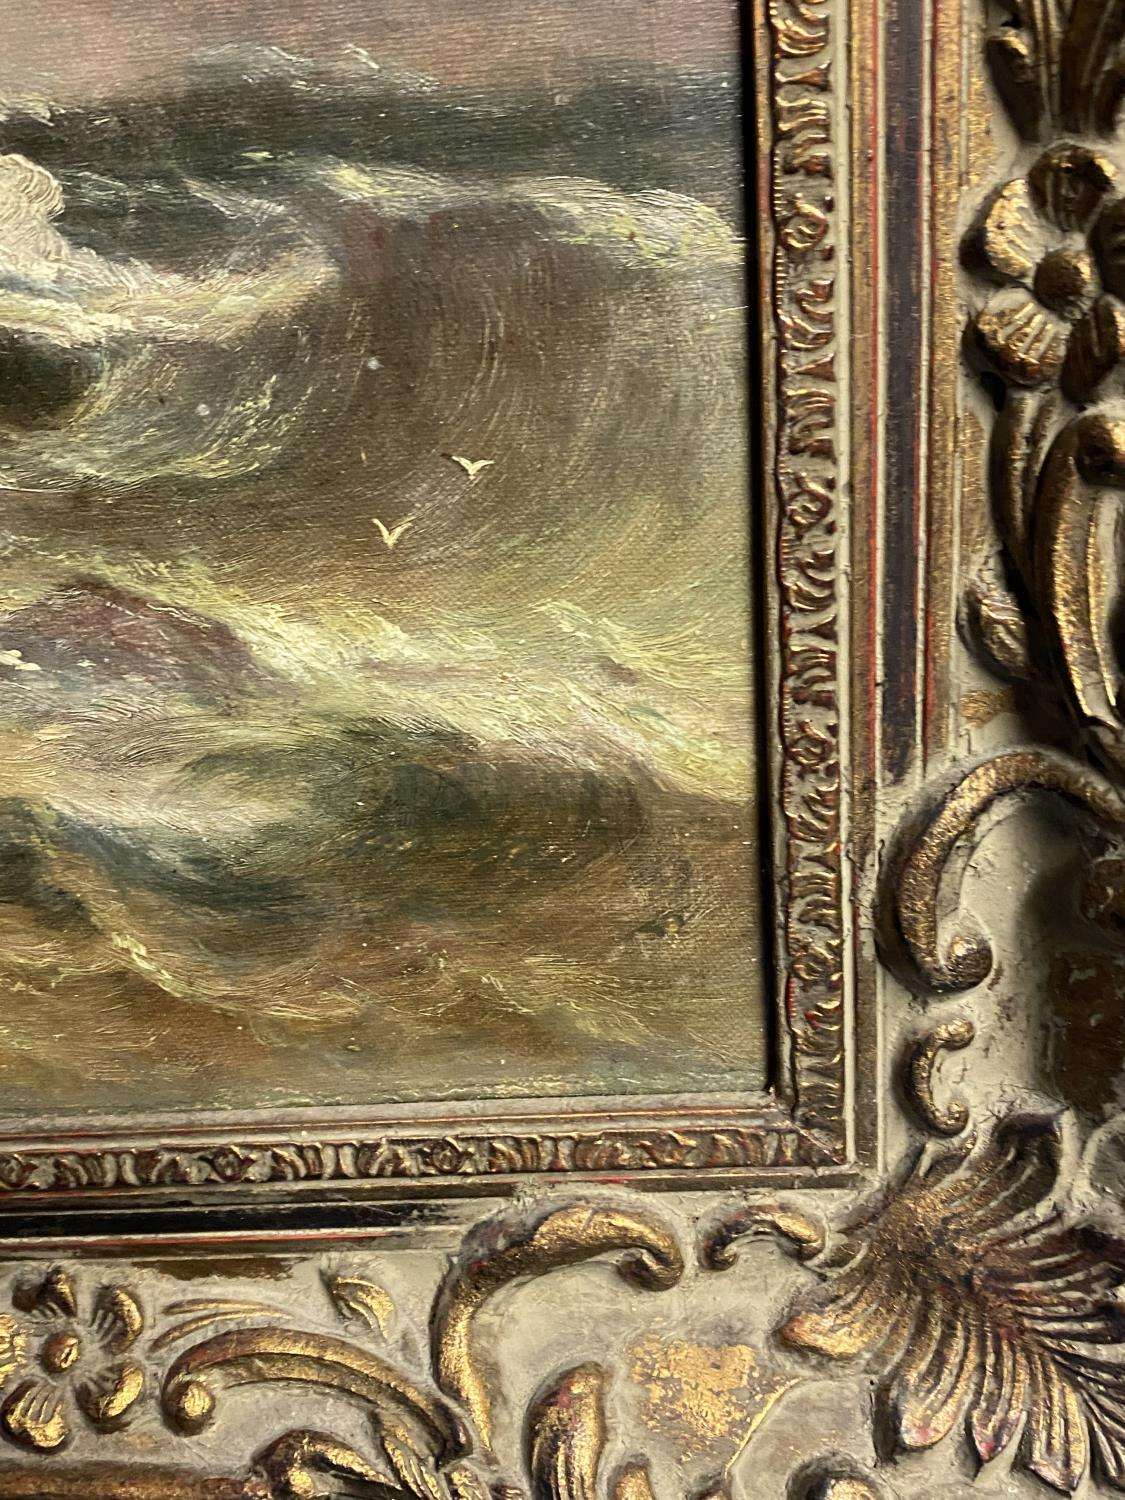 C19th oil on canvas, figures on rocks within a stormy sea, 50 x 60cm - Image 3 of 3